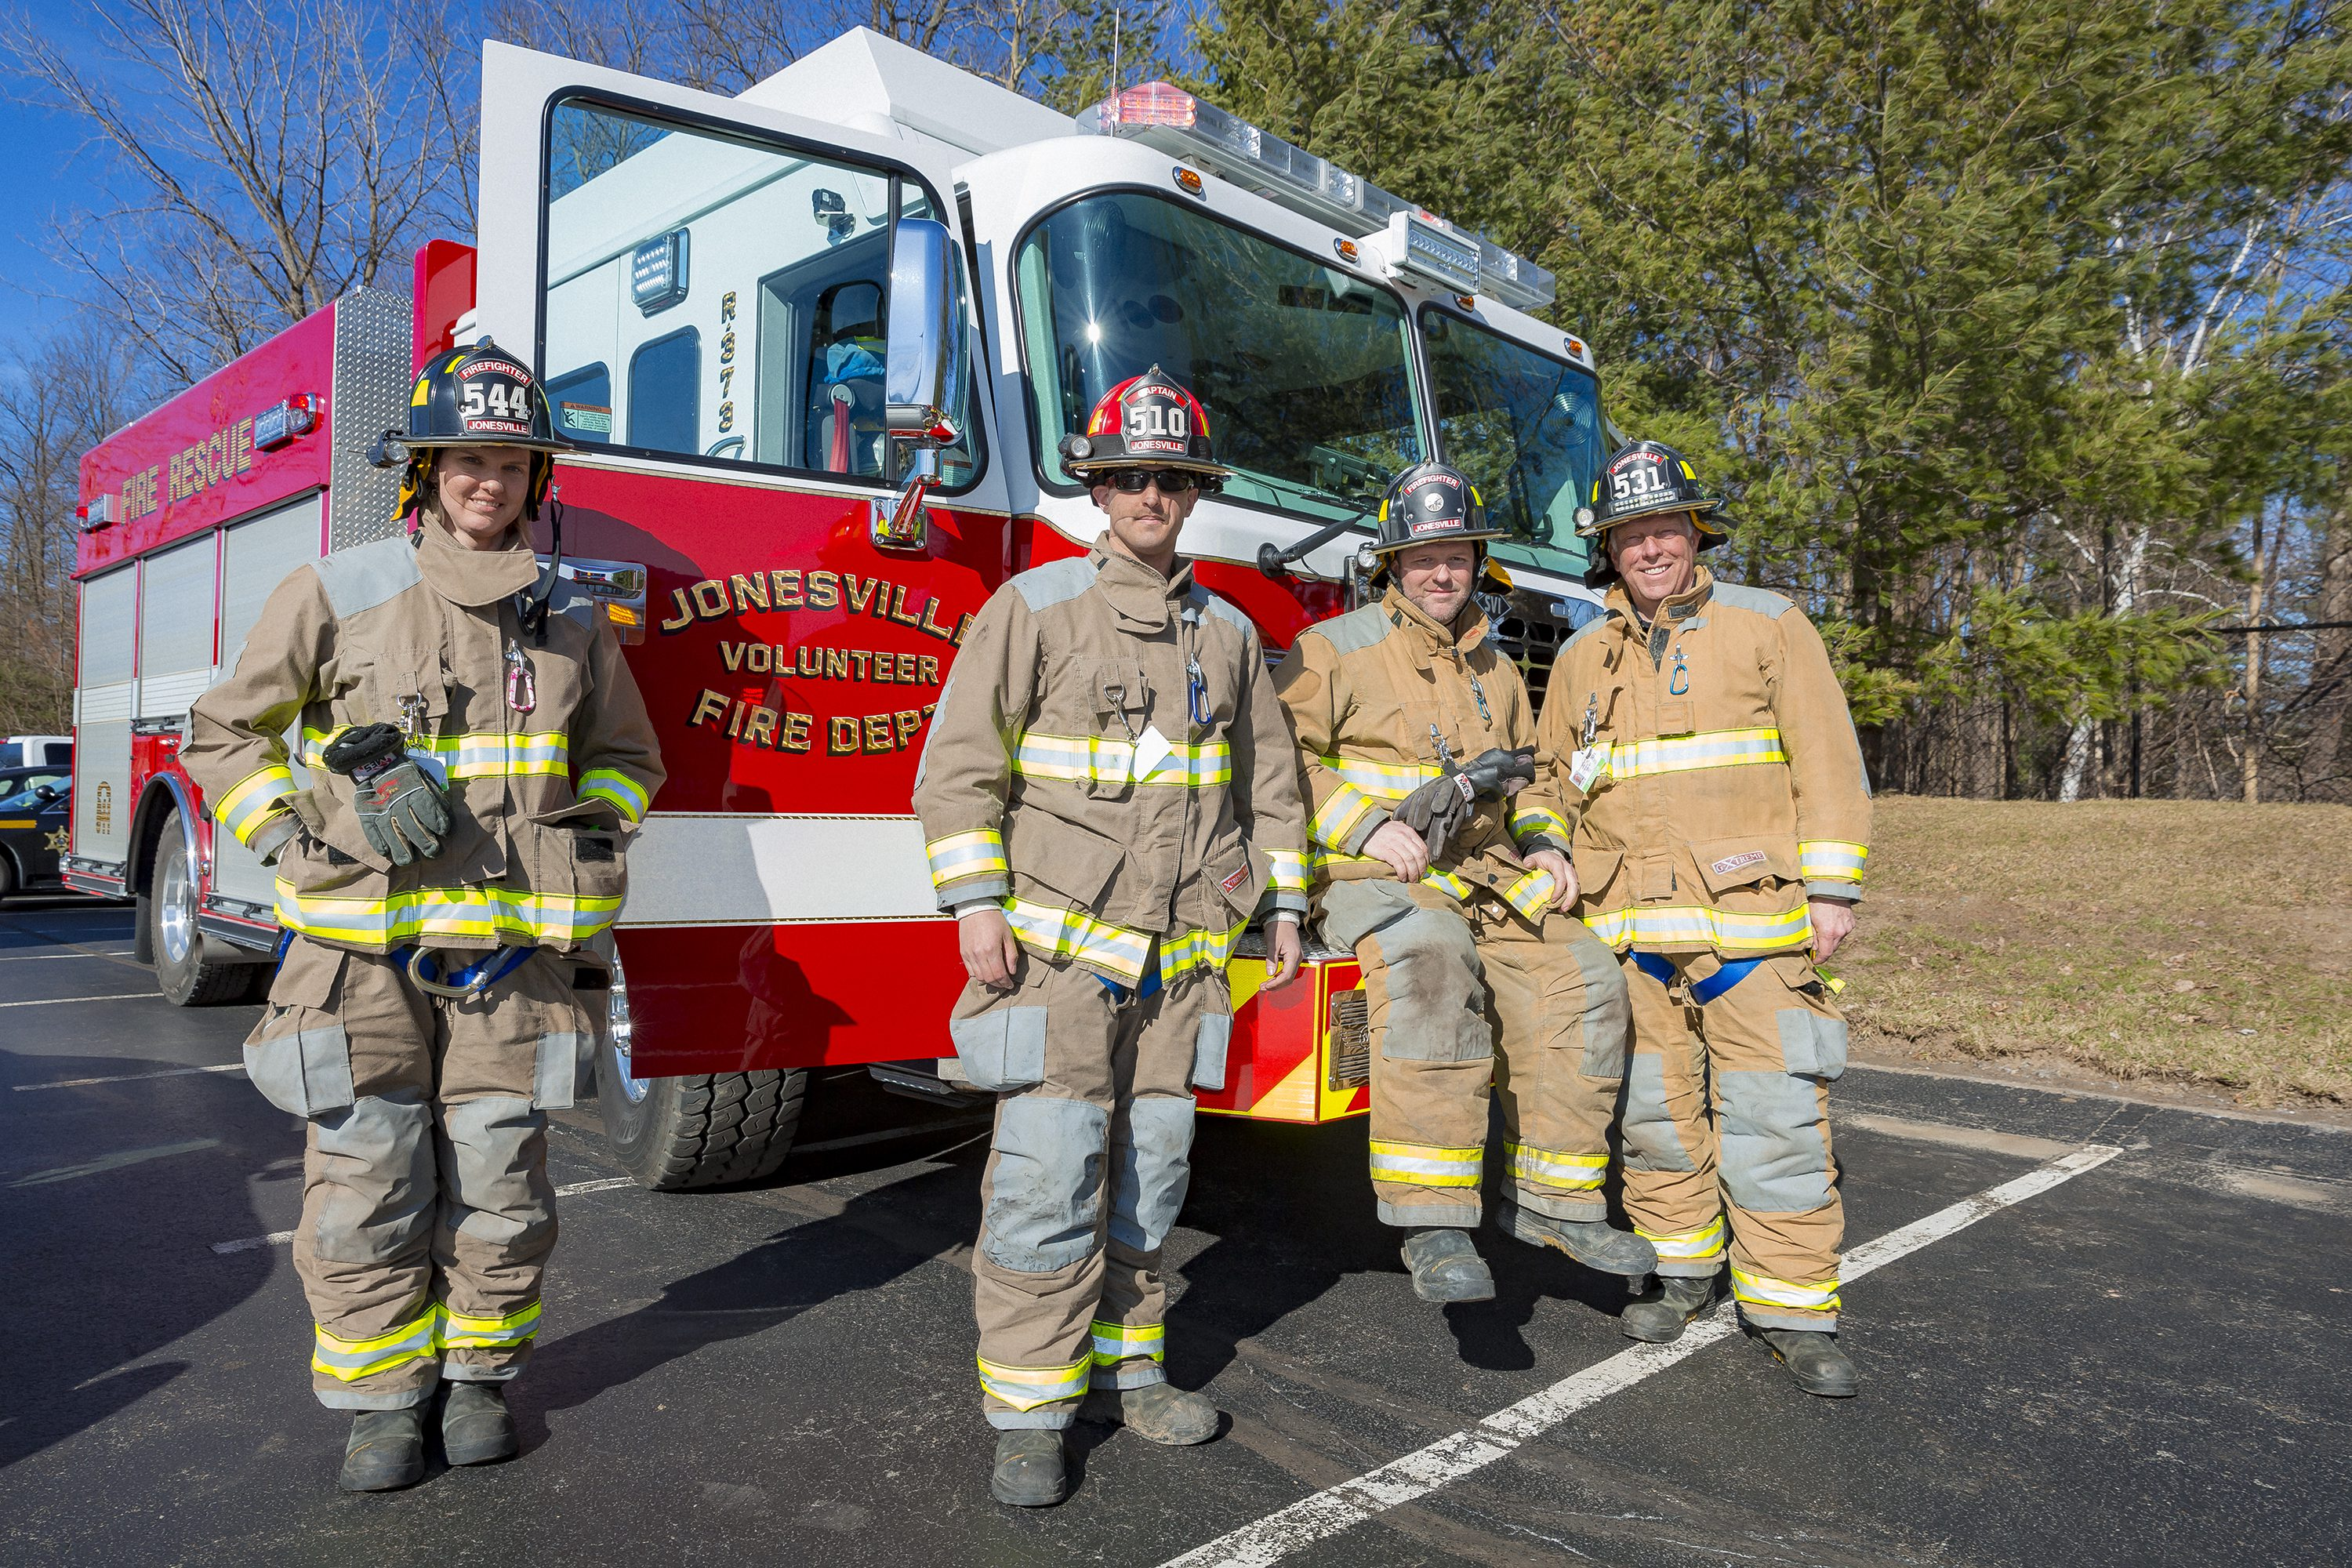 Recruit NY Open House – Saturday, April 27th 11 am to 3 pm